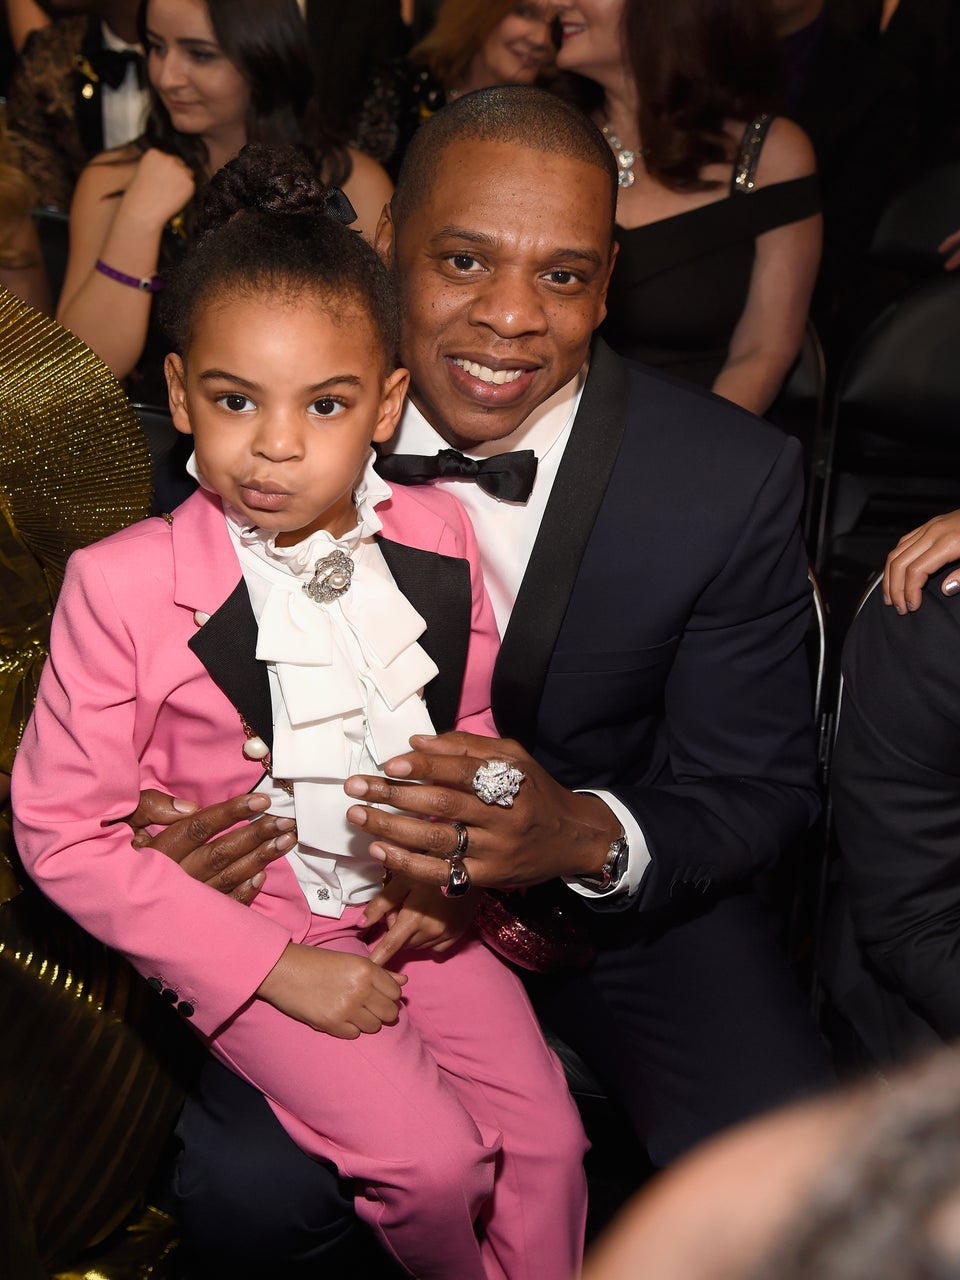 Could This Jay Z and Blue Ivy Father-Daughter Moment at the Grammys Be Any Cuter?